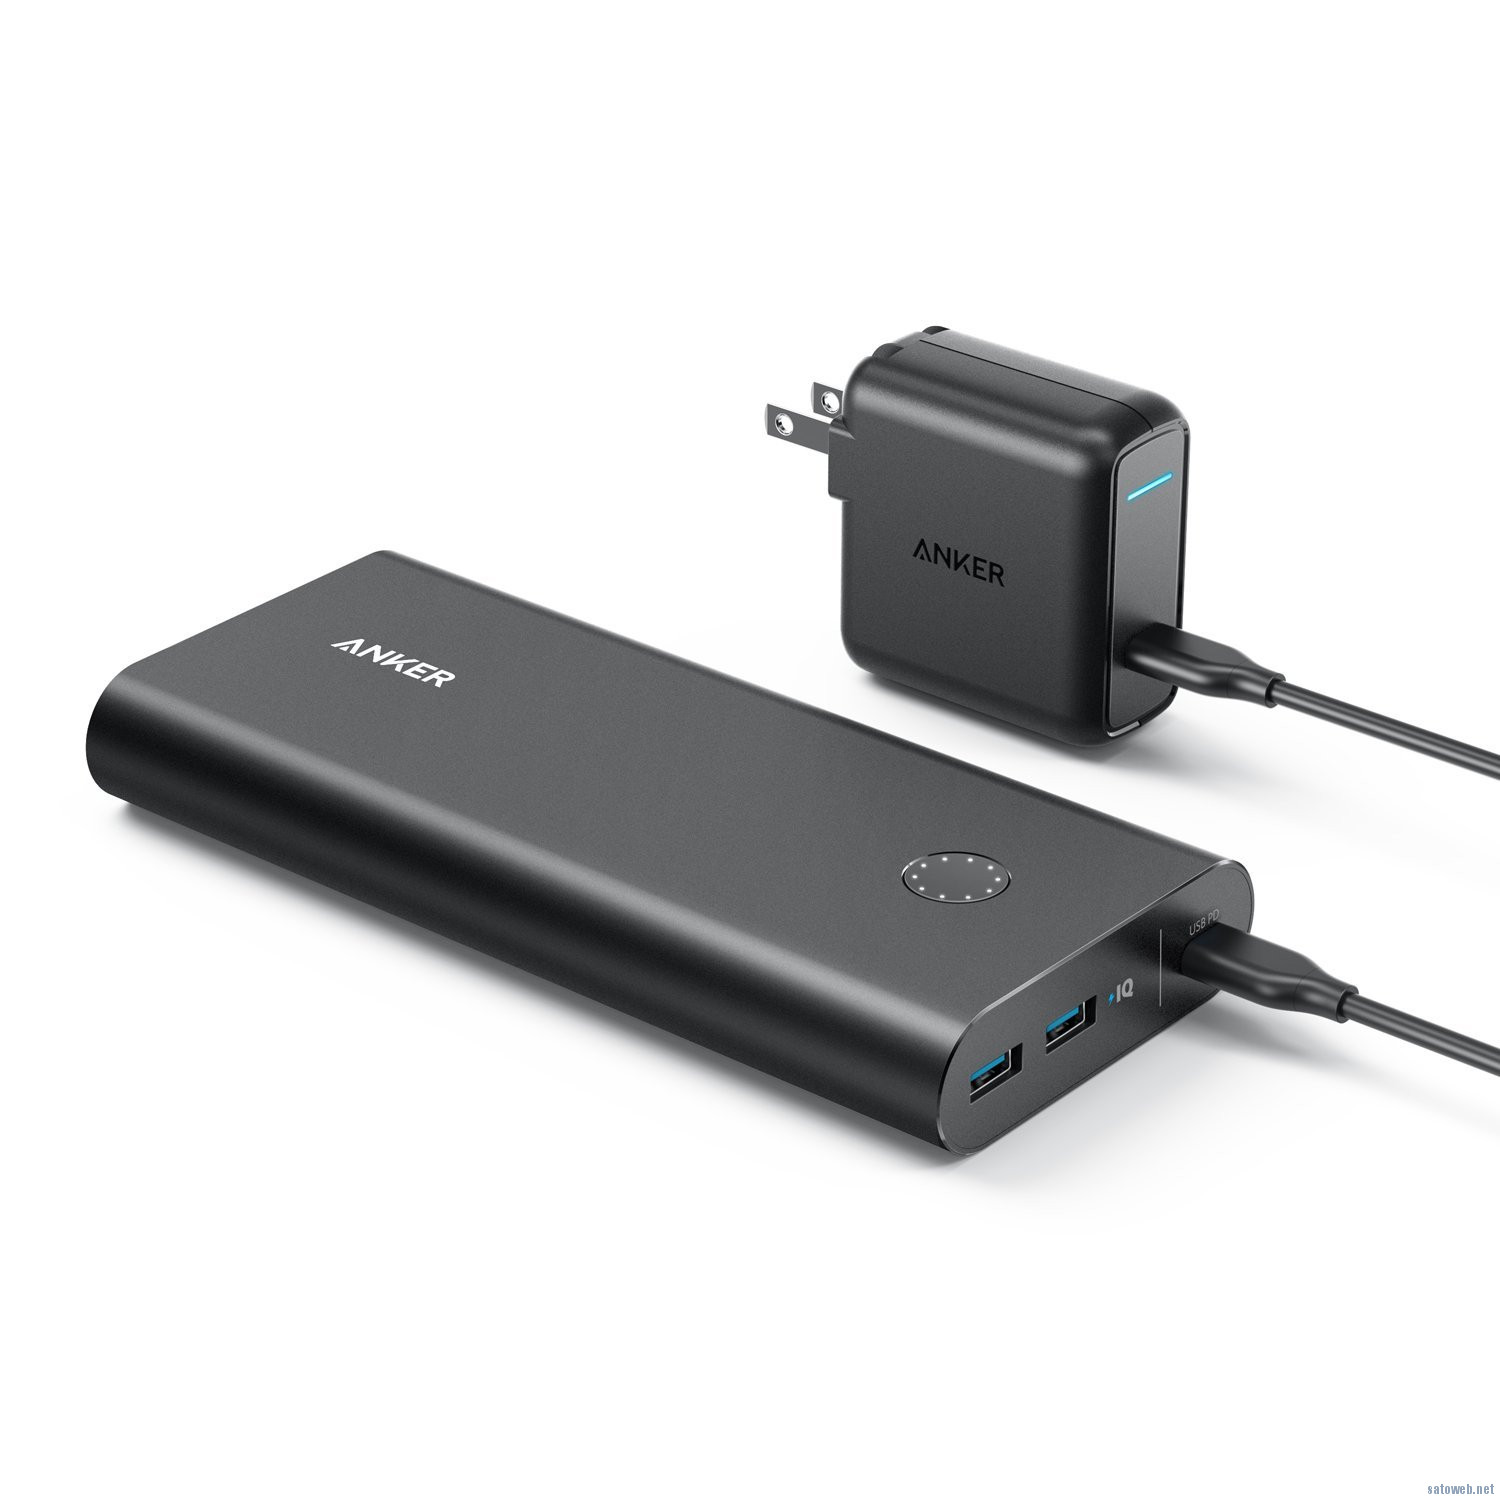 Anker からPower Delivery対応 モバイルバッテリー「PowerCore+ 26800 PD 」登場、充電器付属で9999円也。